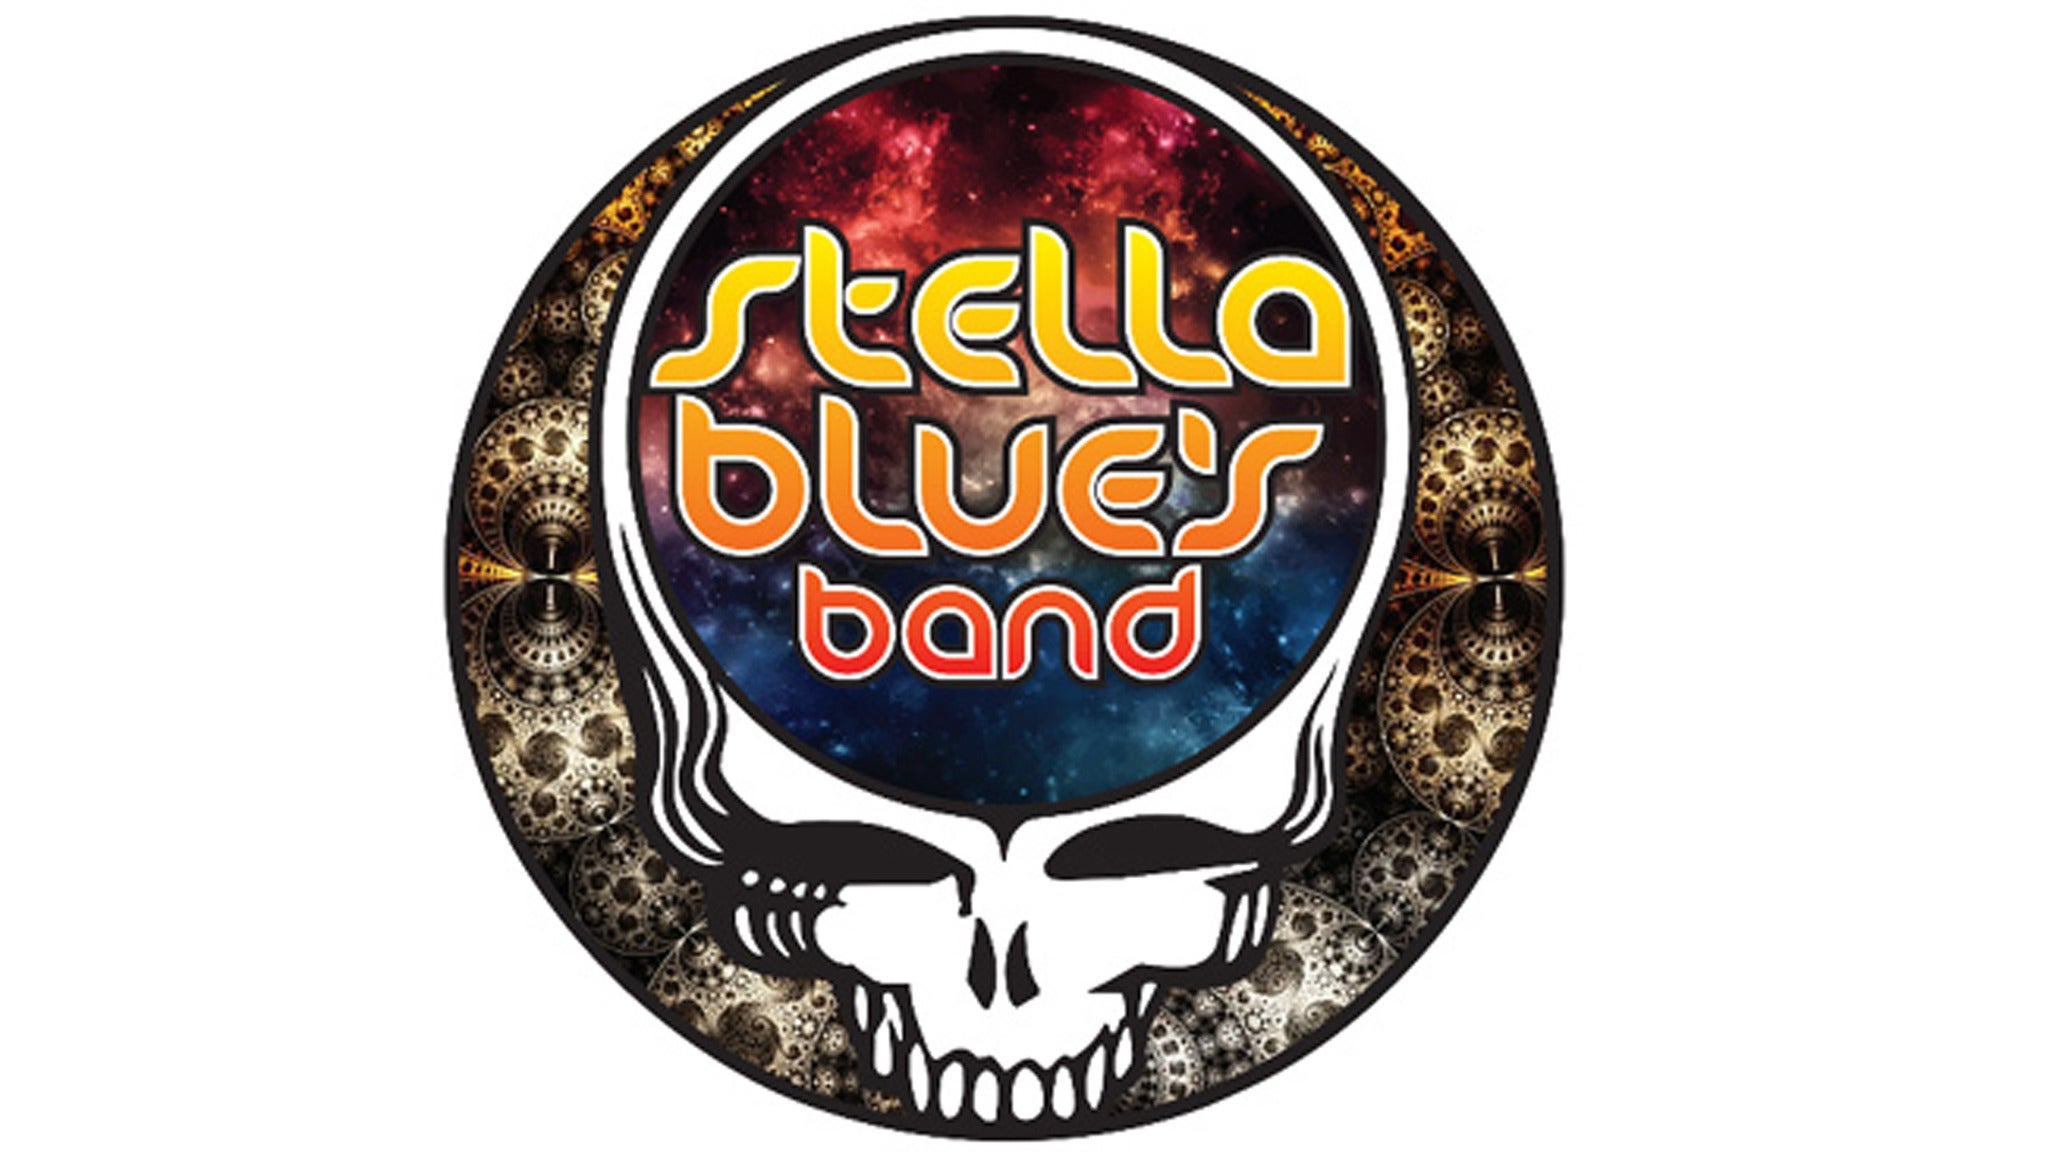 Stella Blue's Band: Now Is The Time Of Returning